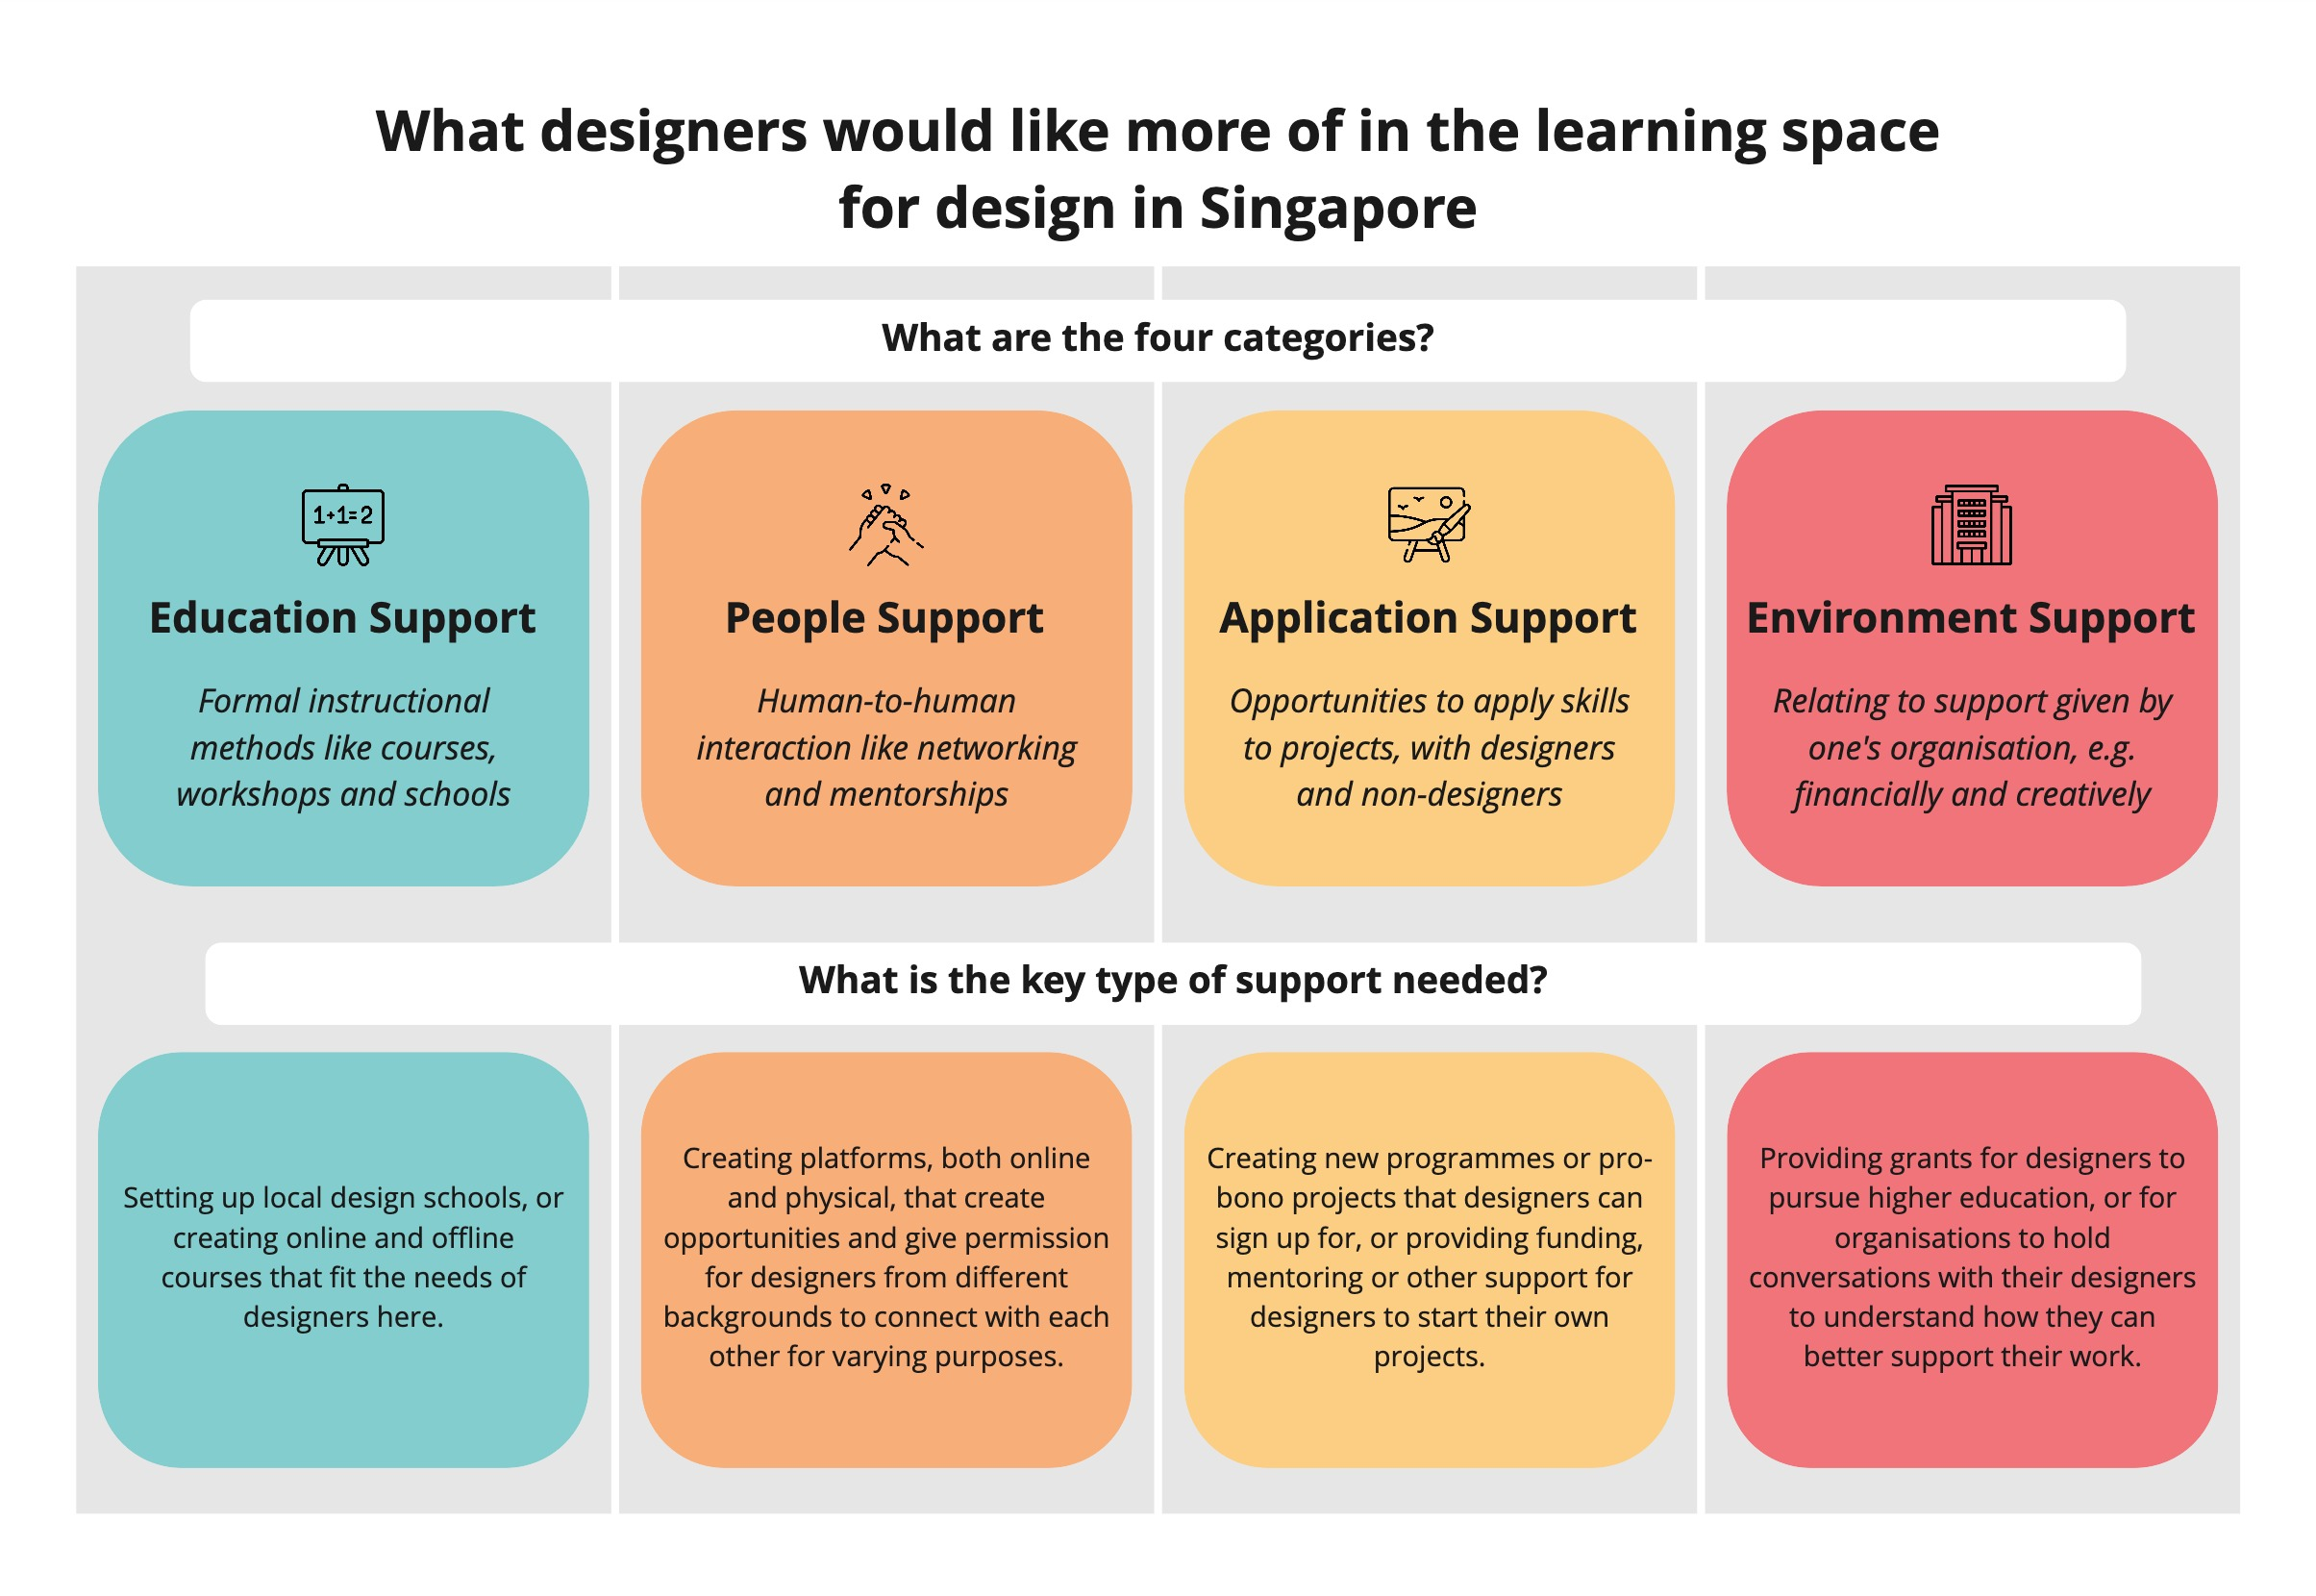 Key Support for Learning Space